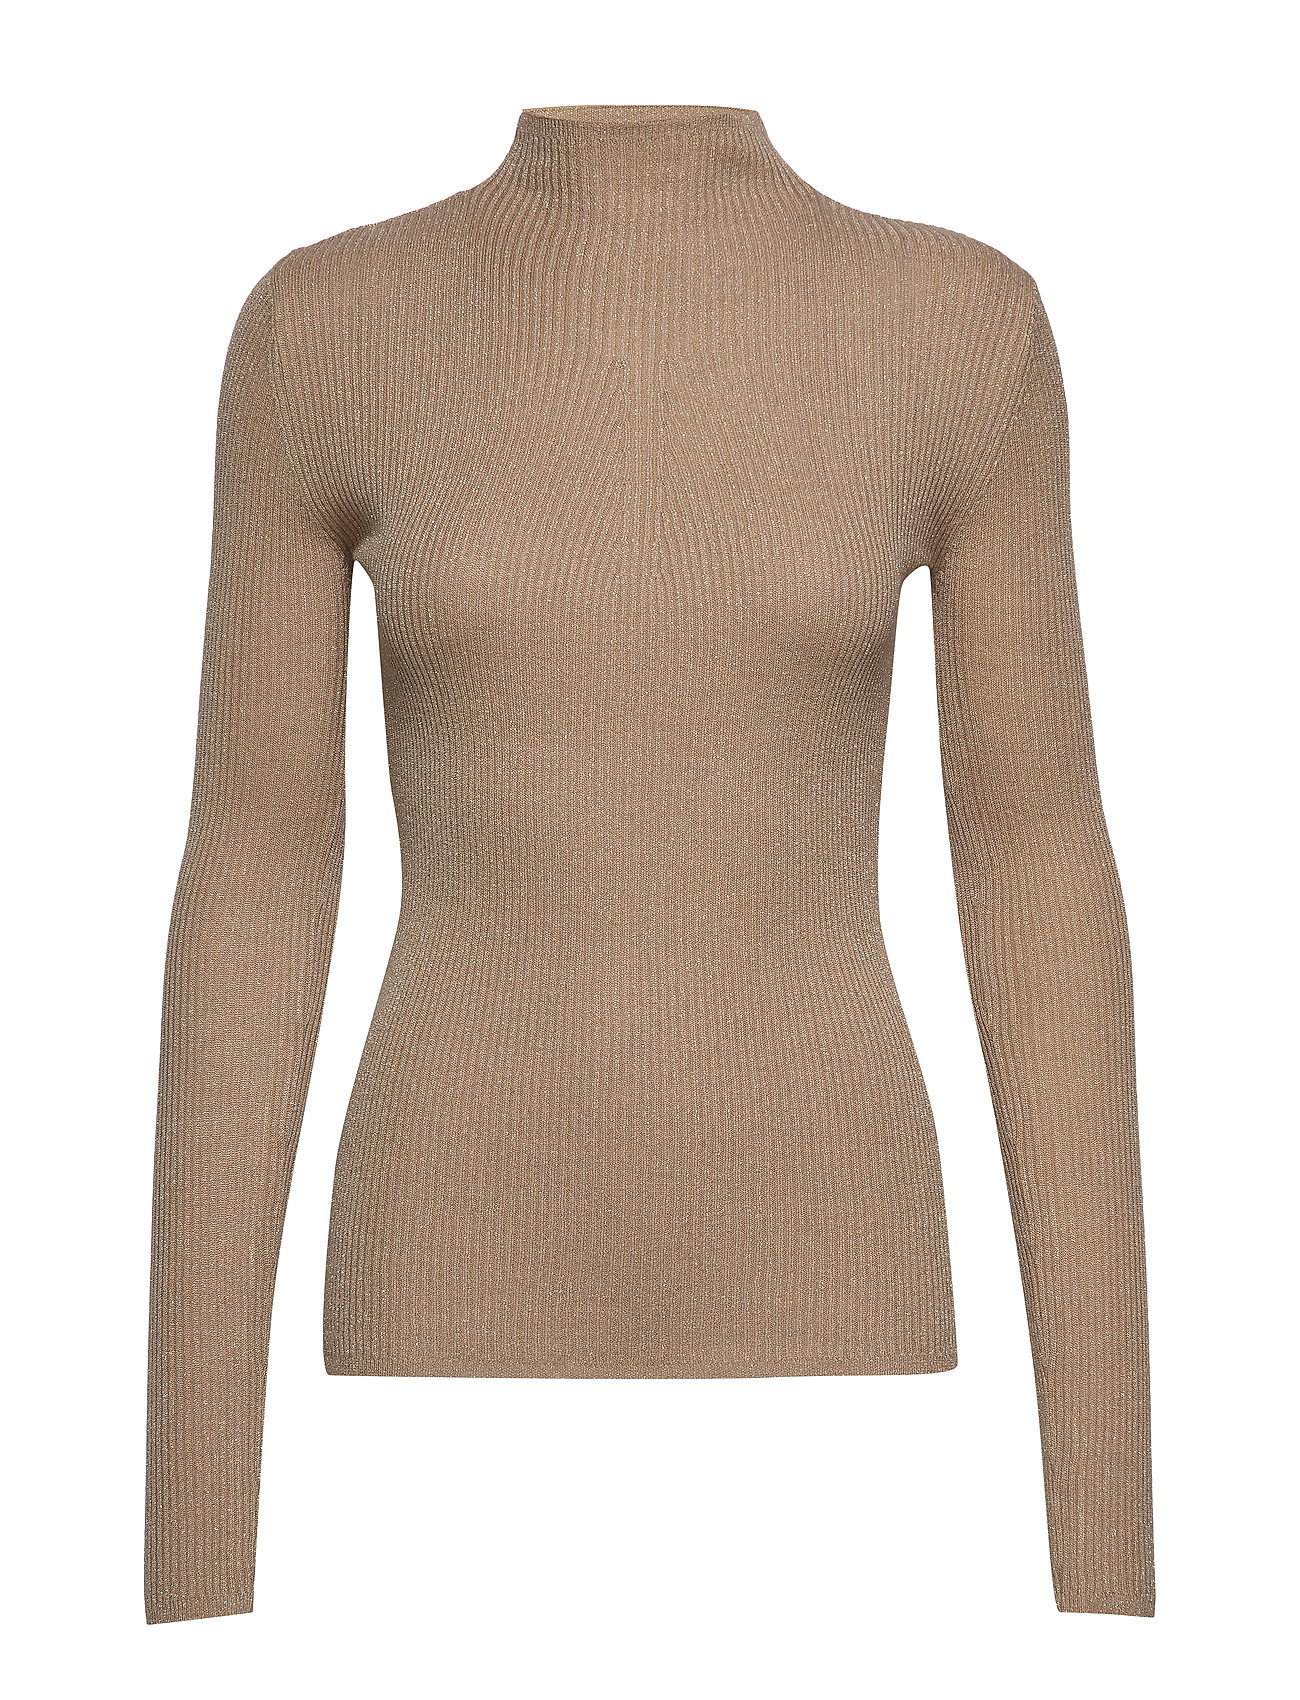 SAND Lurex Viscose - Eleri Top - BEIGE